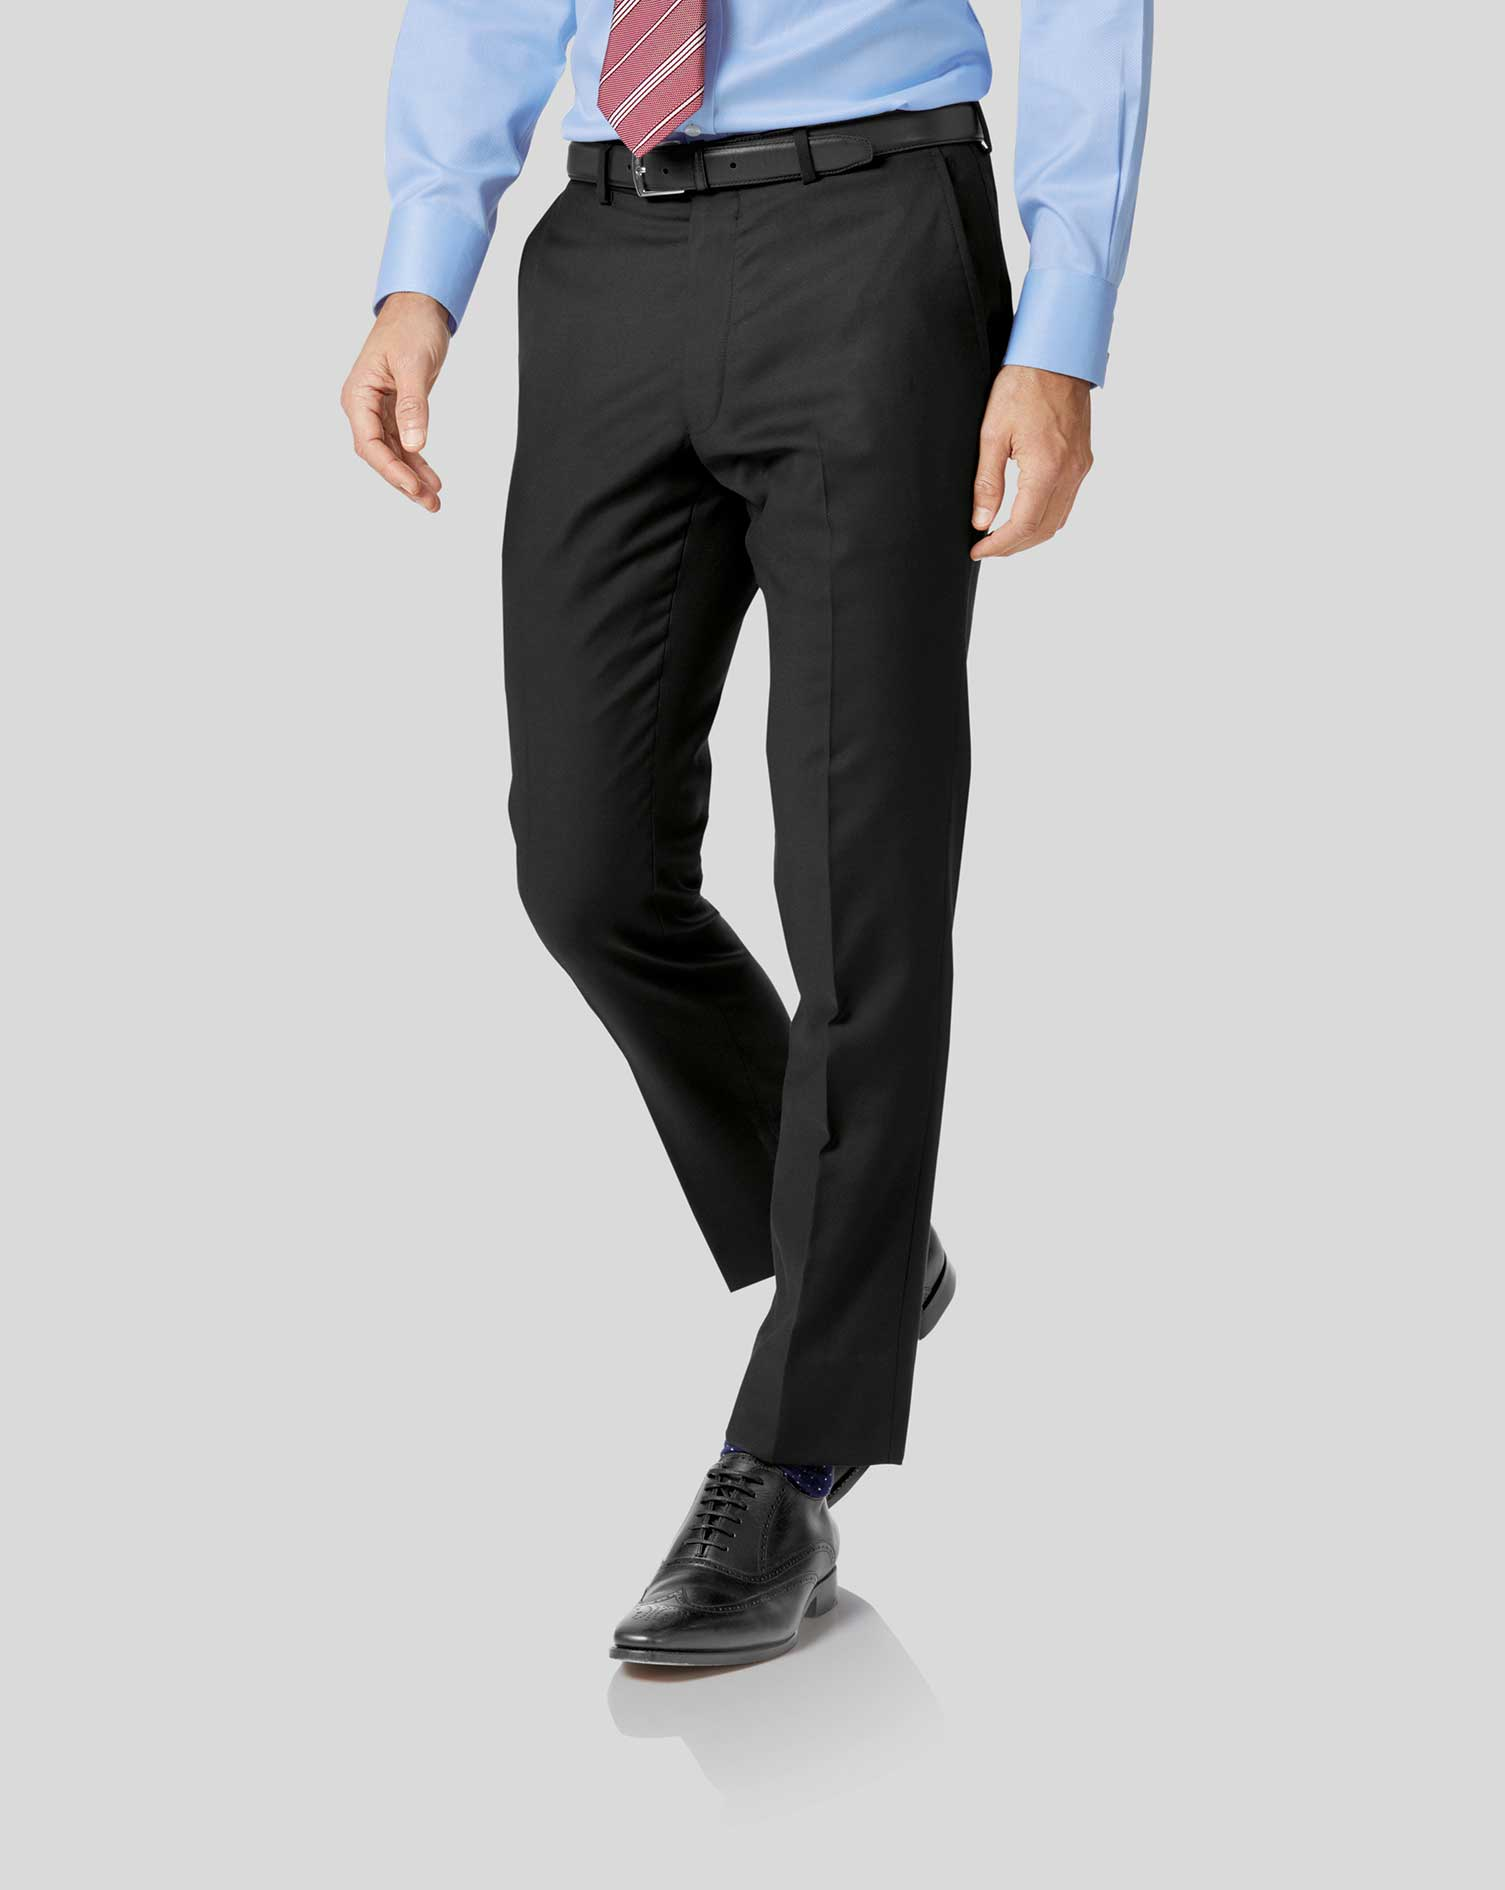 Black slim fit twill business suit pants